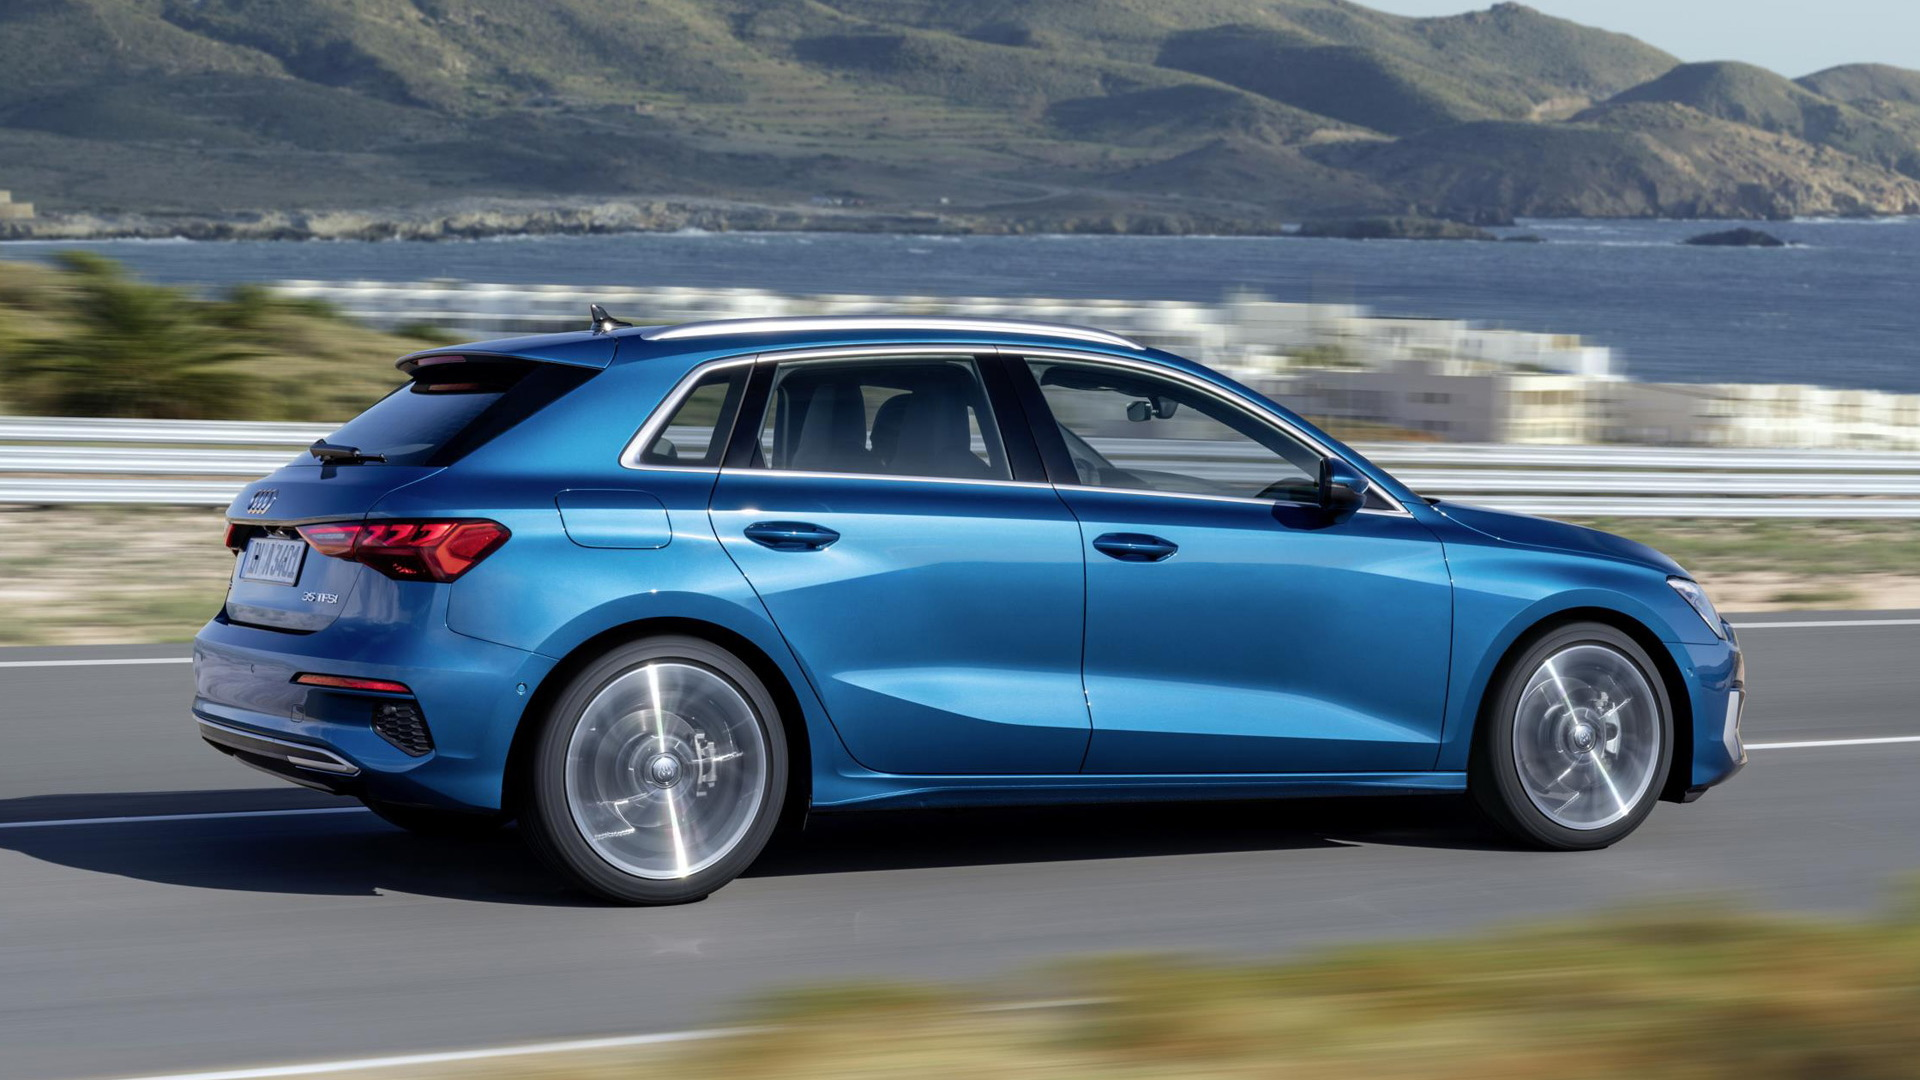 2021 Audi A3 revealed in Sportback body style